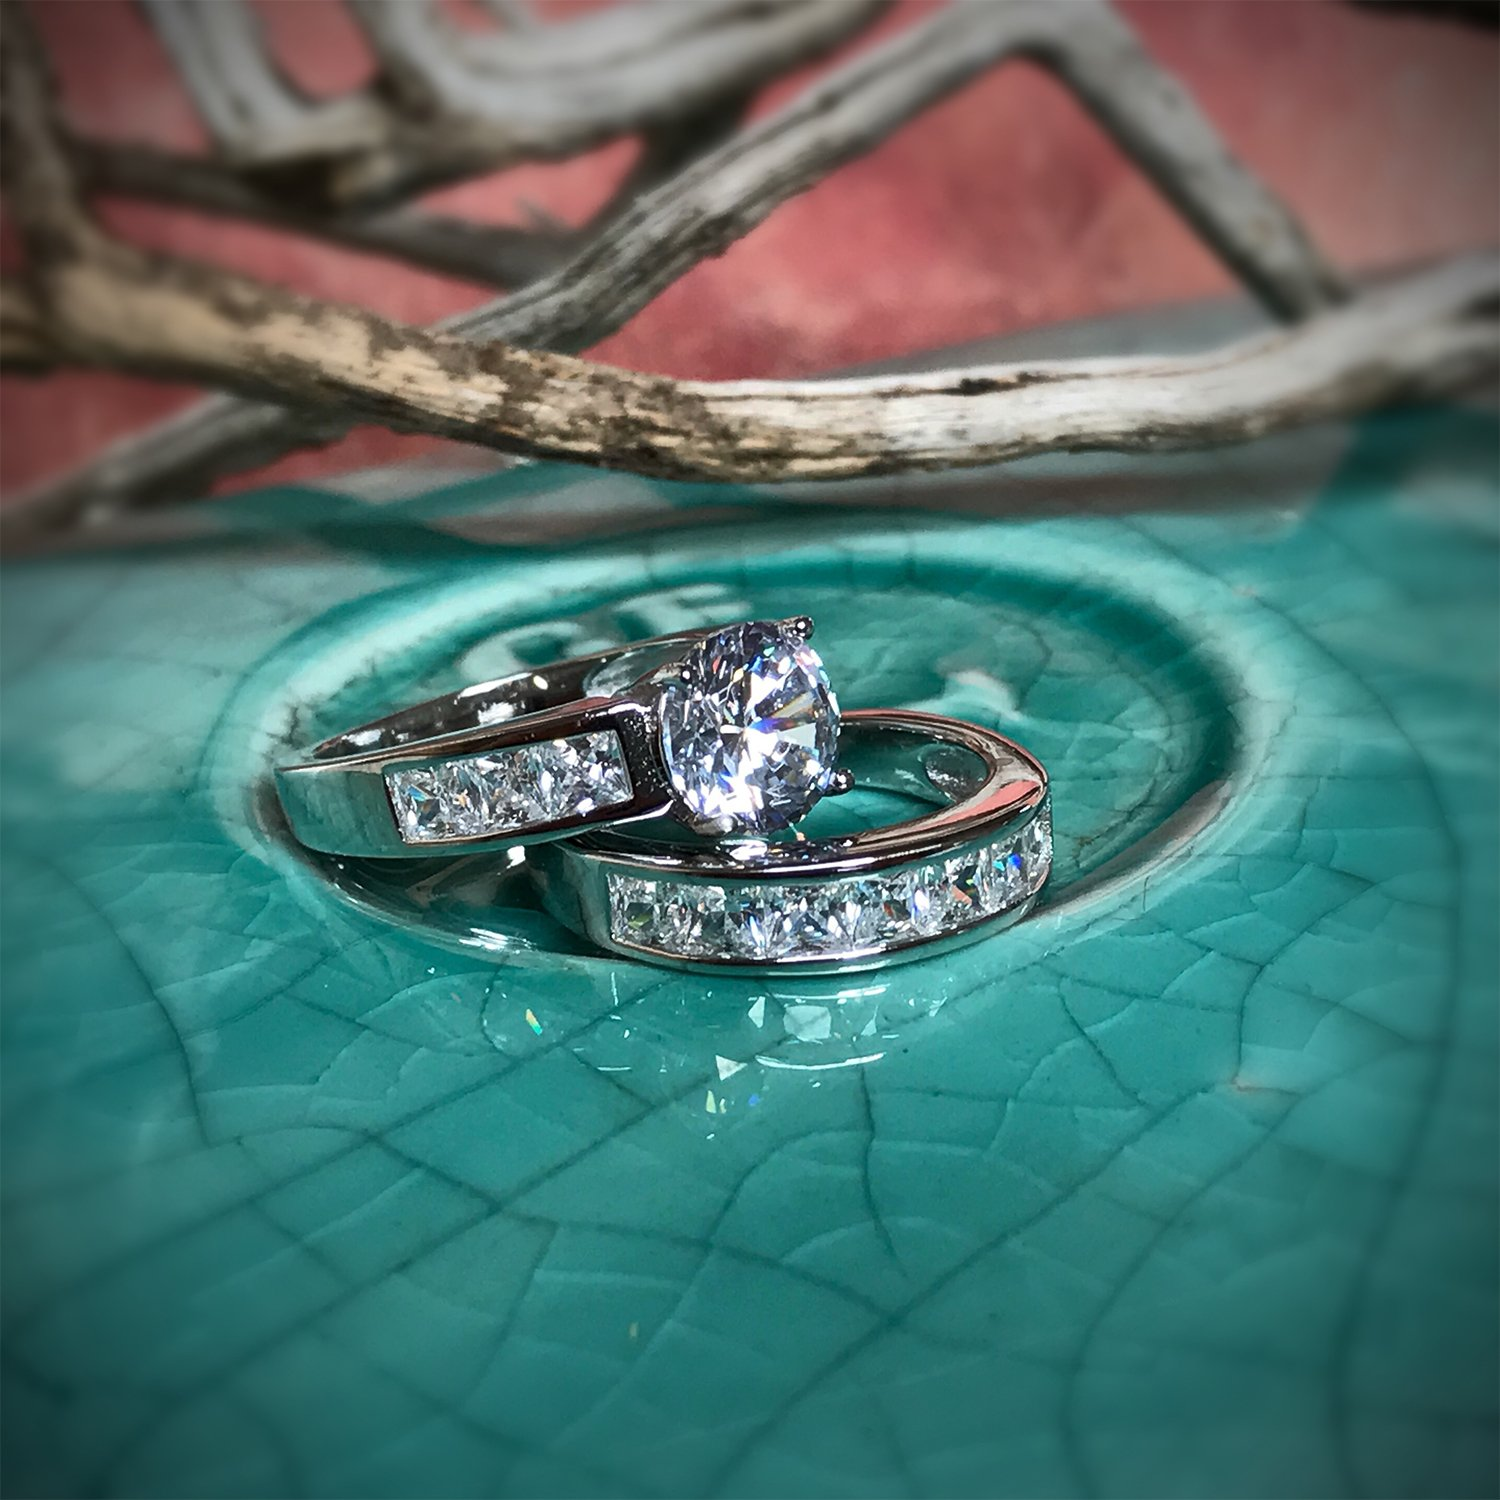 Sterling Silver Bridal Set Engagement Wedding Ring Bands with Round and Princess Cut Cubic Zirconia 7 by Bonndorf (Image #5)